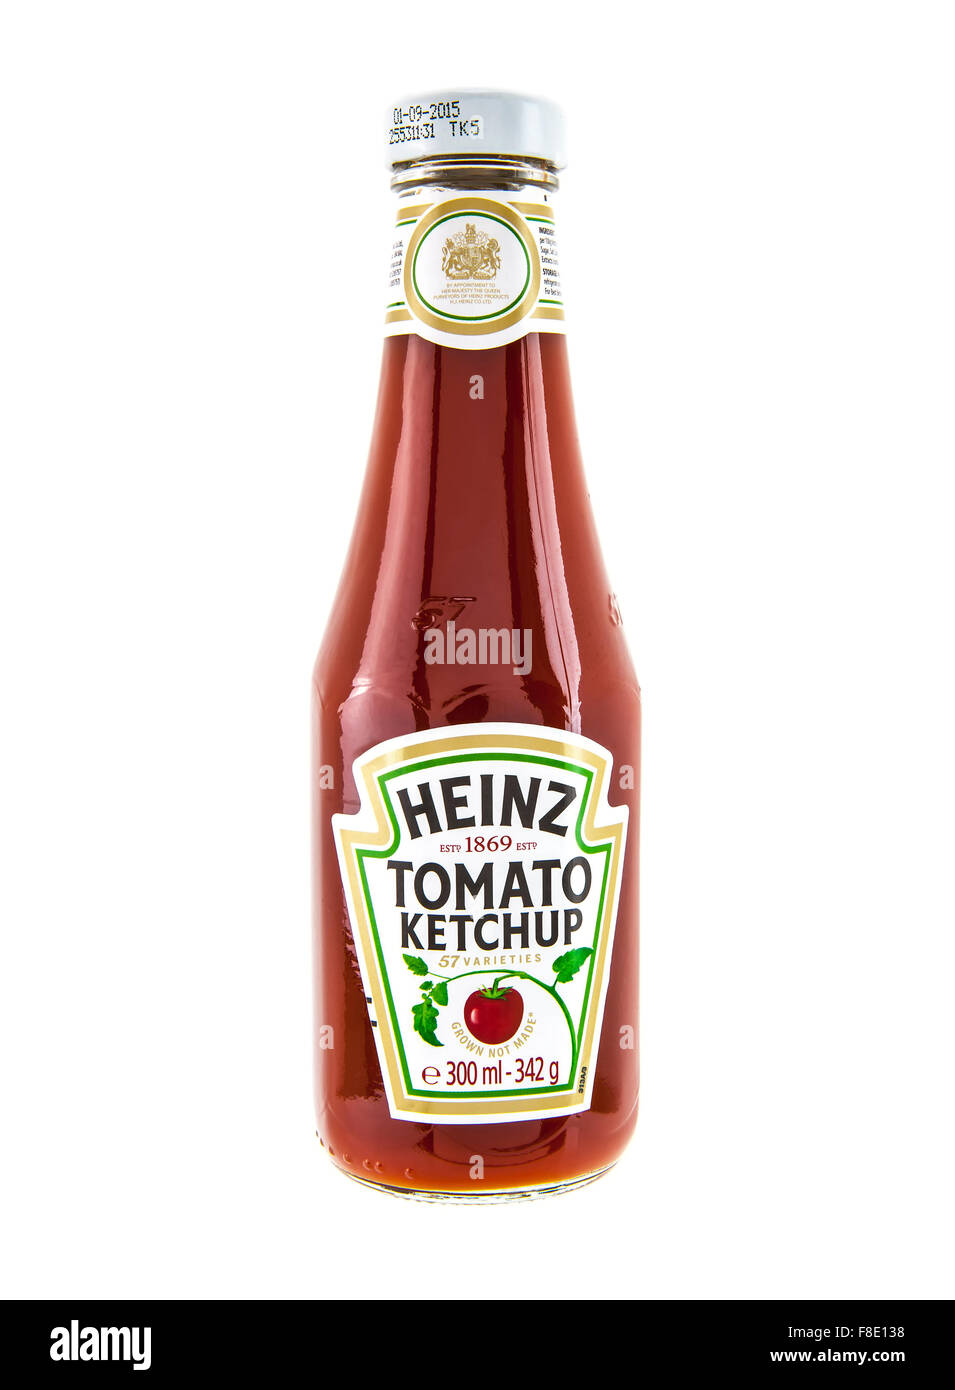 Heinz Classic bottle of Tomato Ketchup on a white background - Stock Image